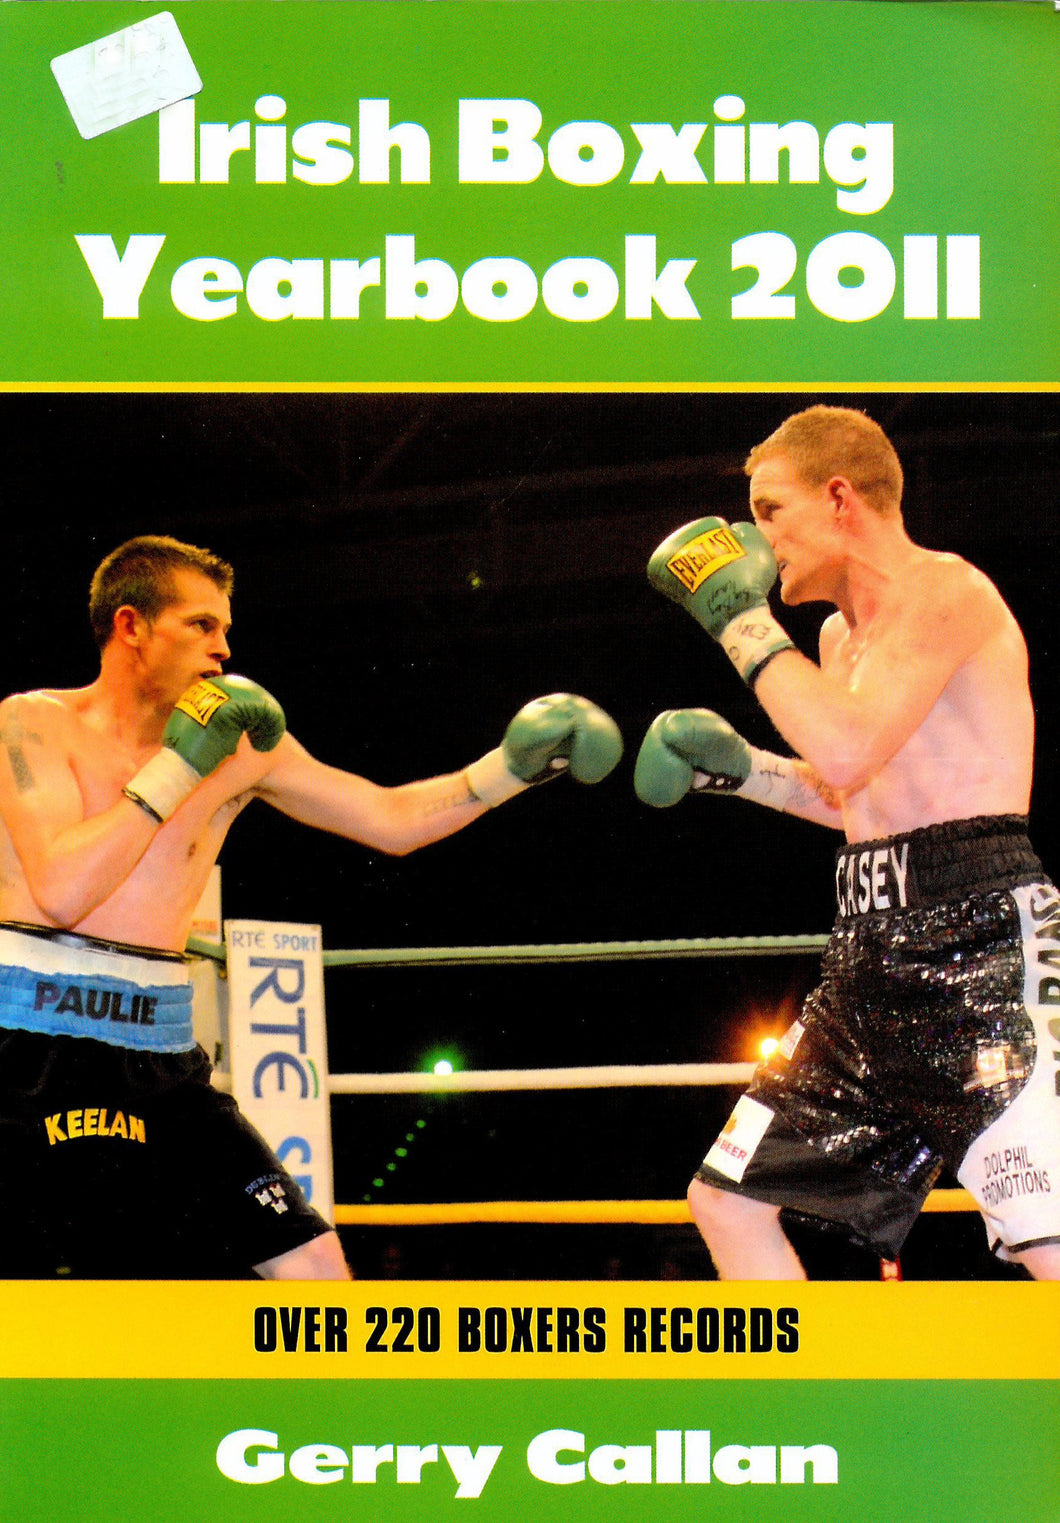 Irish Boxing Yearbook 2011: Over 220 Boxers' Records